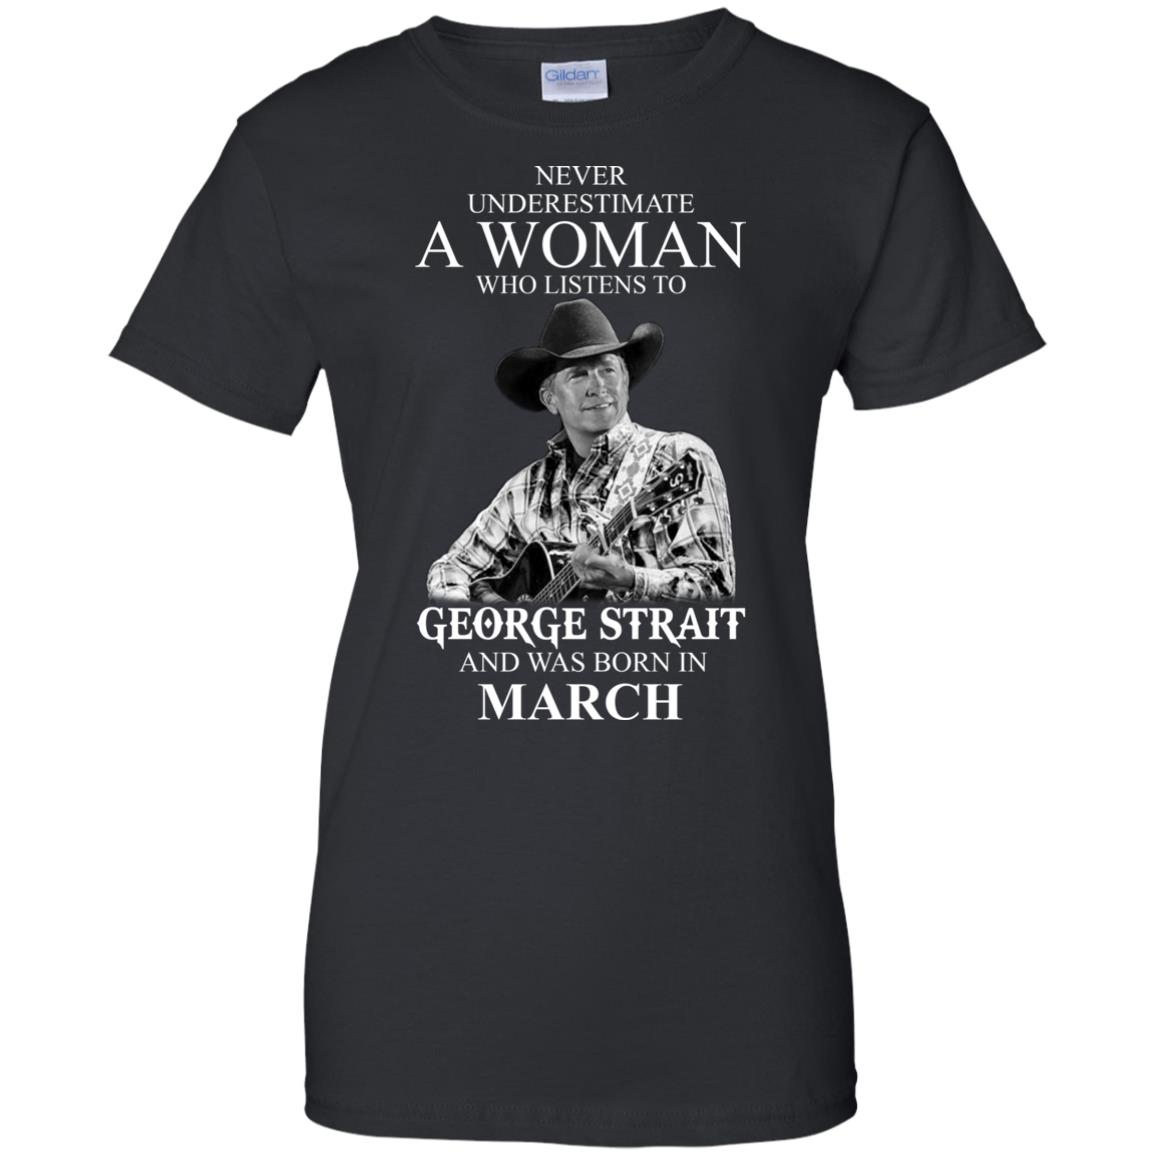 image 444 - Never Underestimate A Woman Who Listens To George Strait And Was Born In March shirt